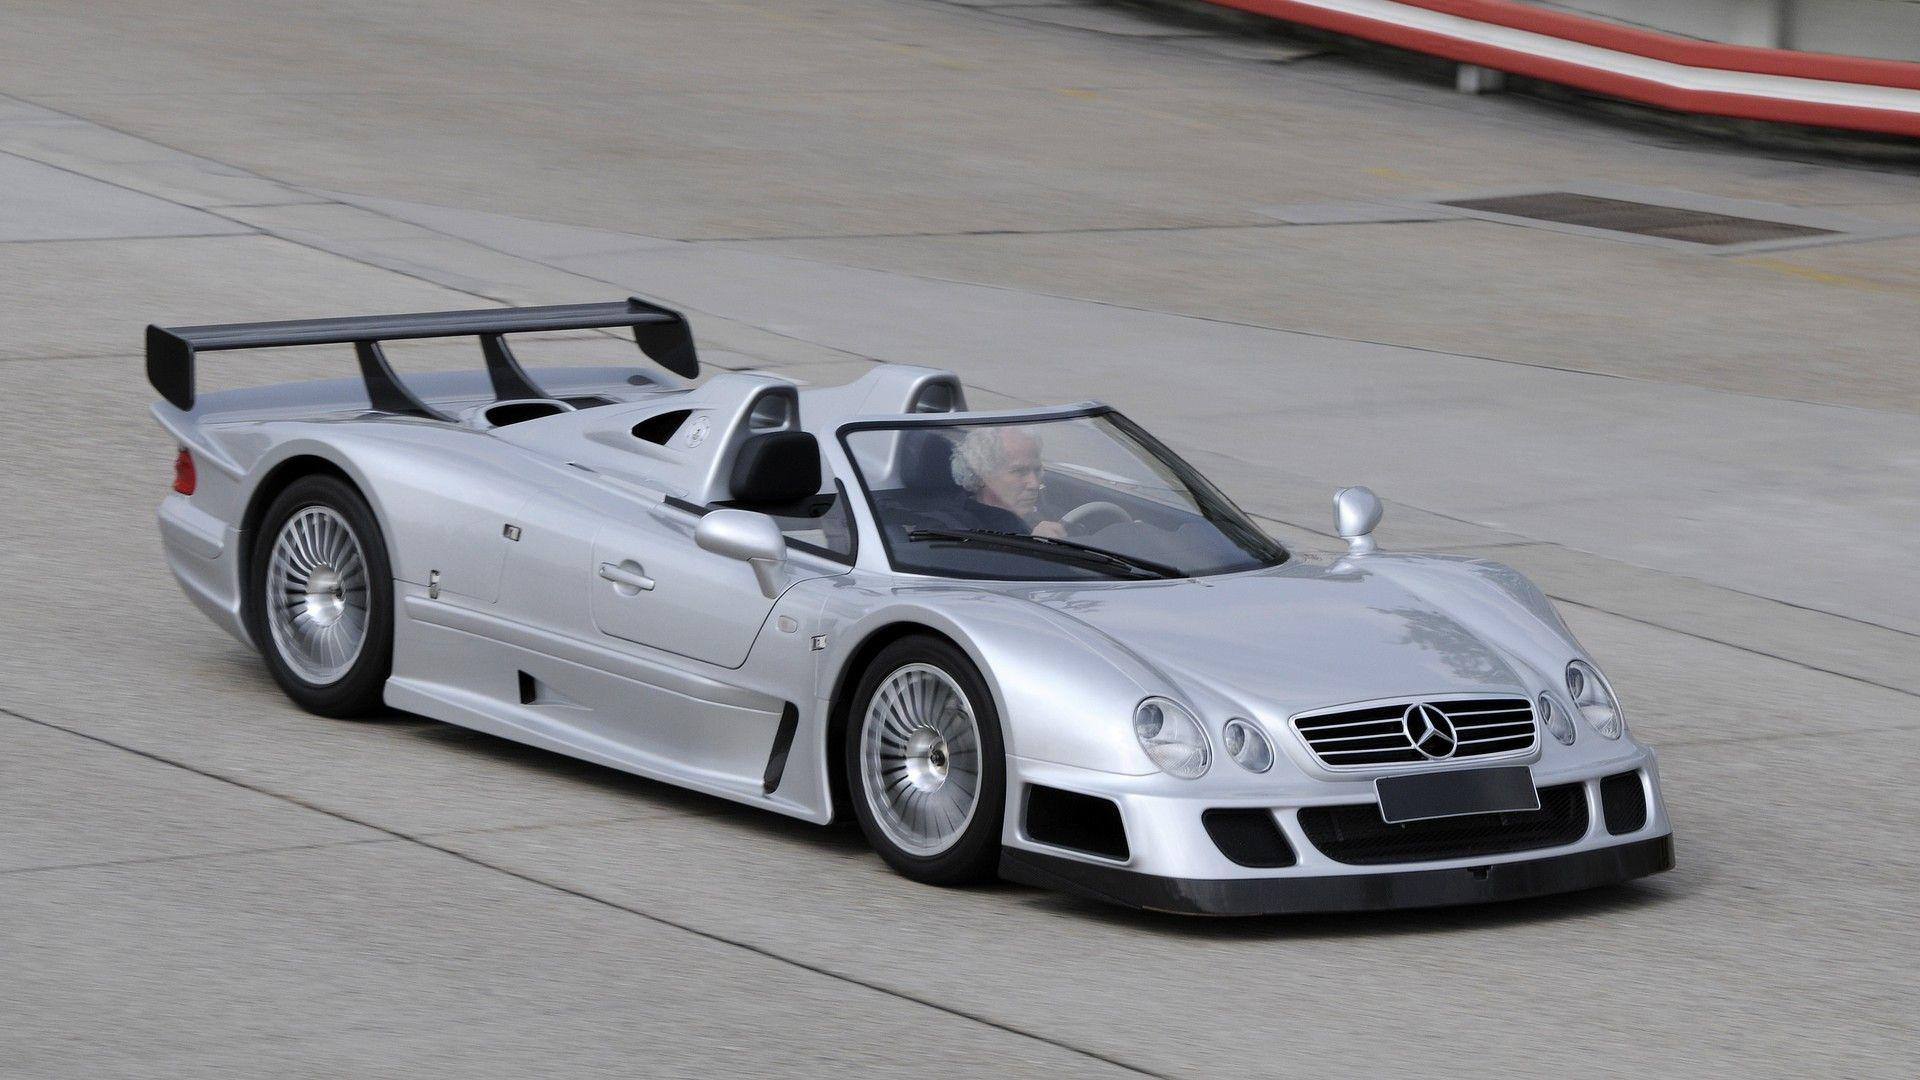 Revisit The Mercedes Amg Clk Gtr In This Short But Sweet Video